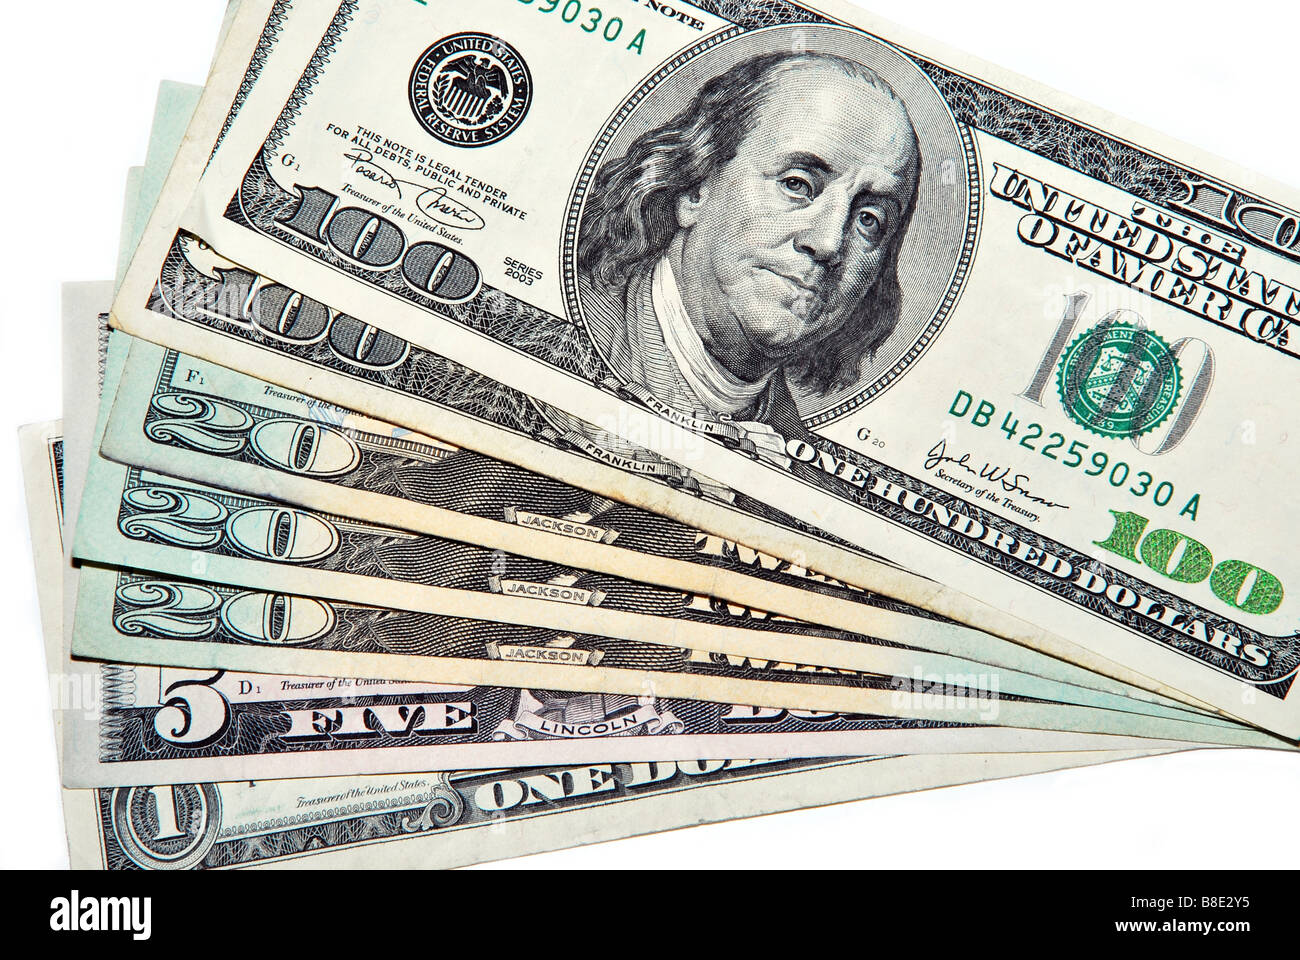 U.S. Currency - Stock Image